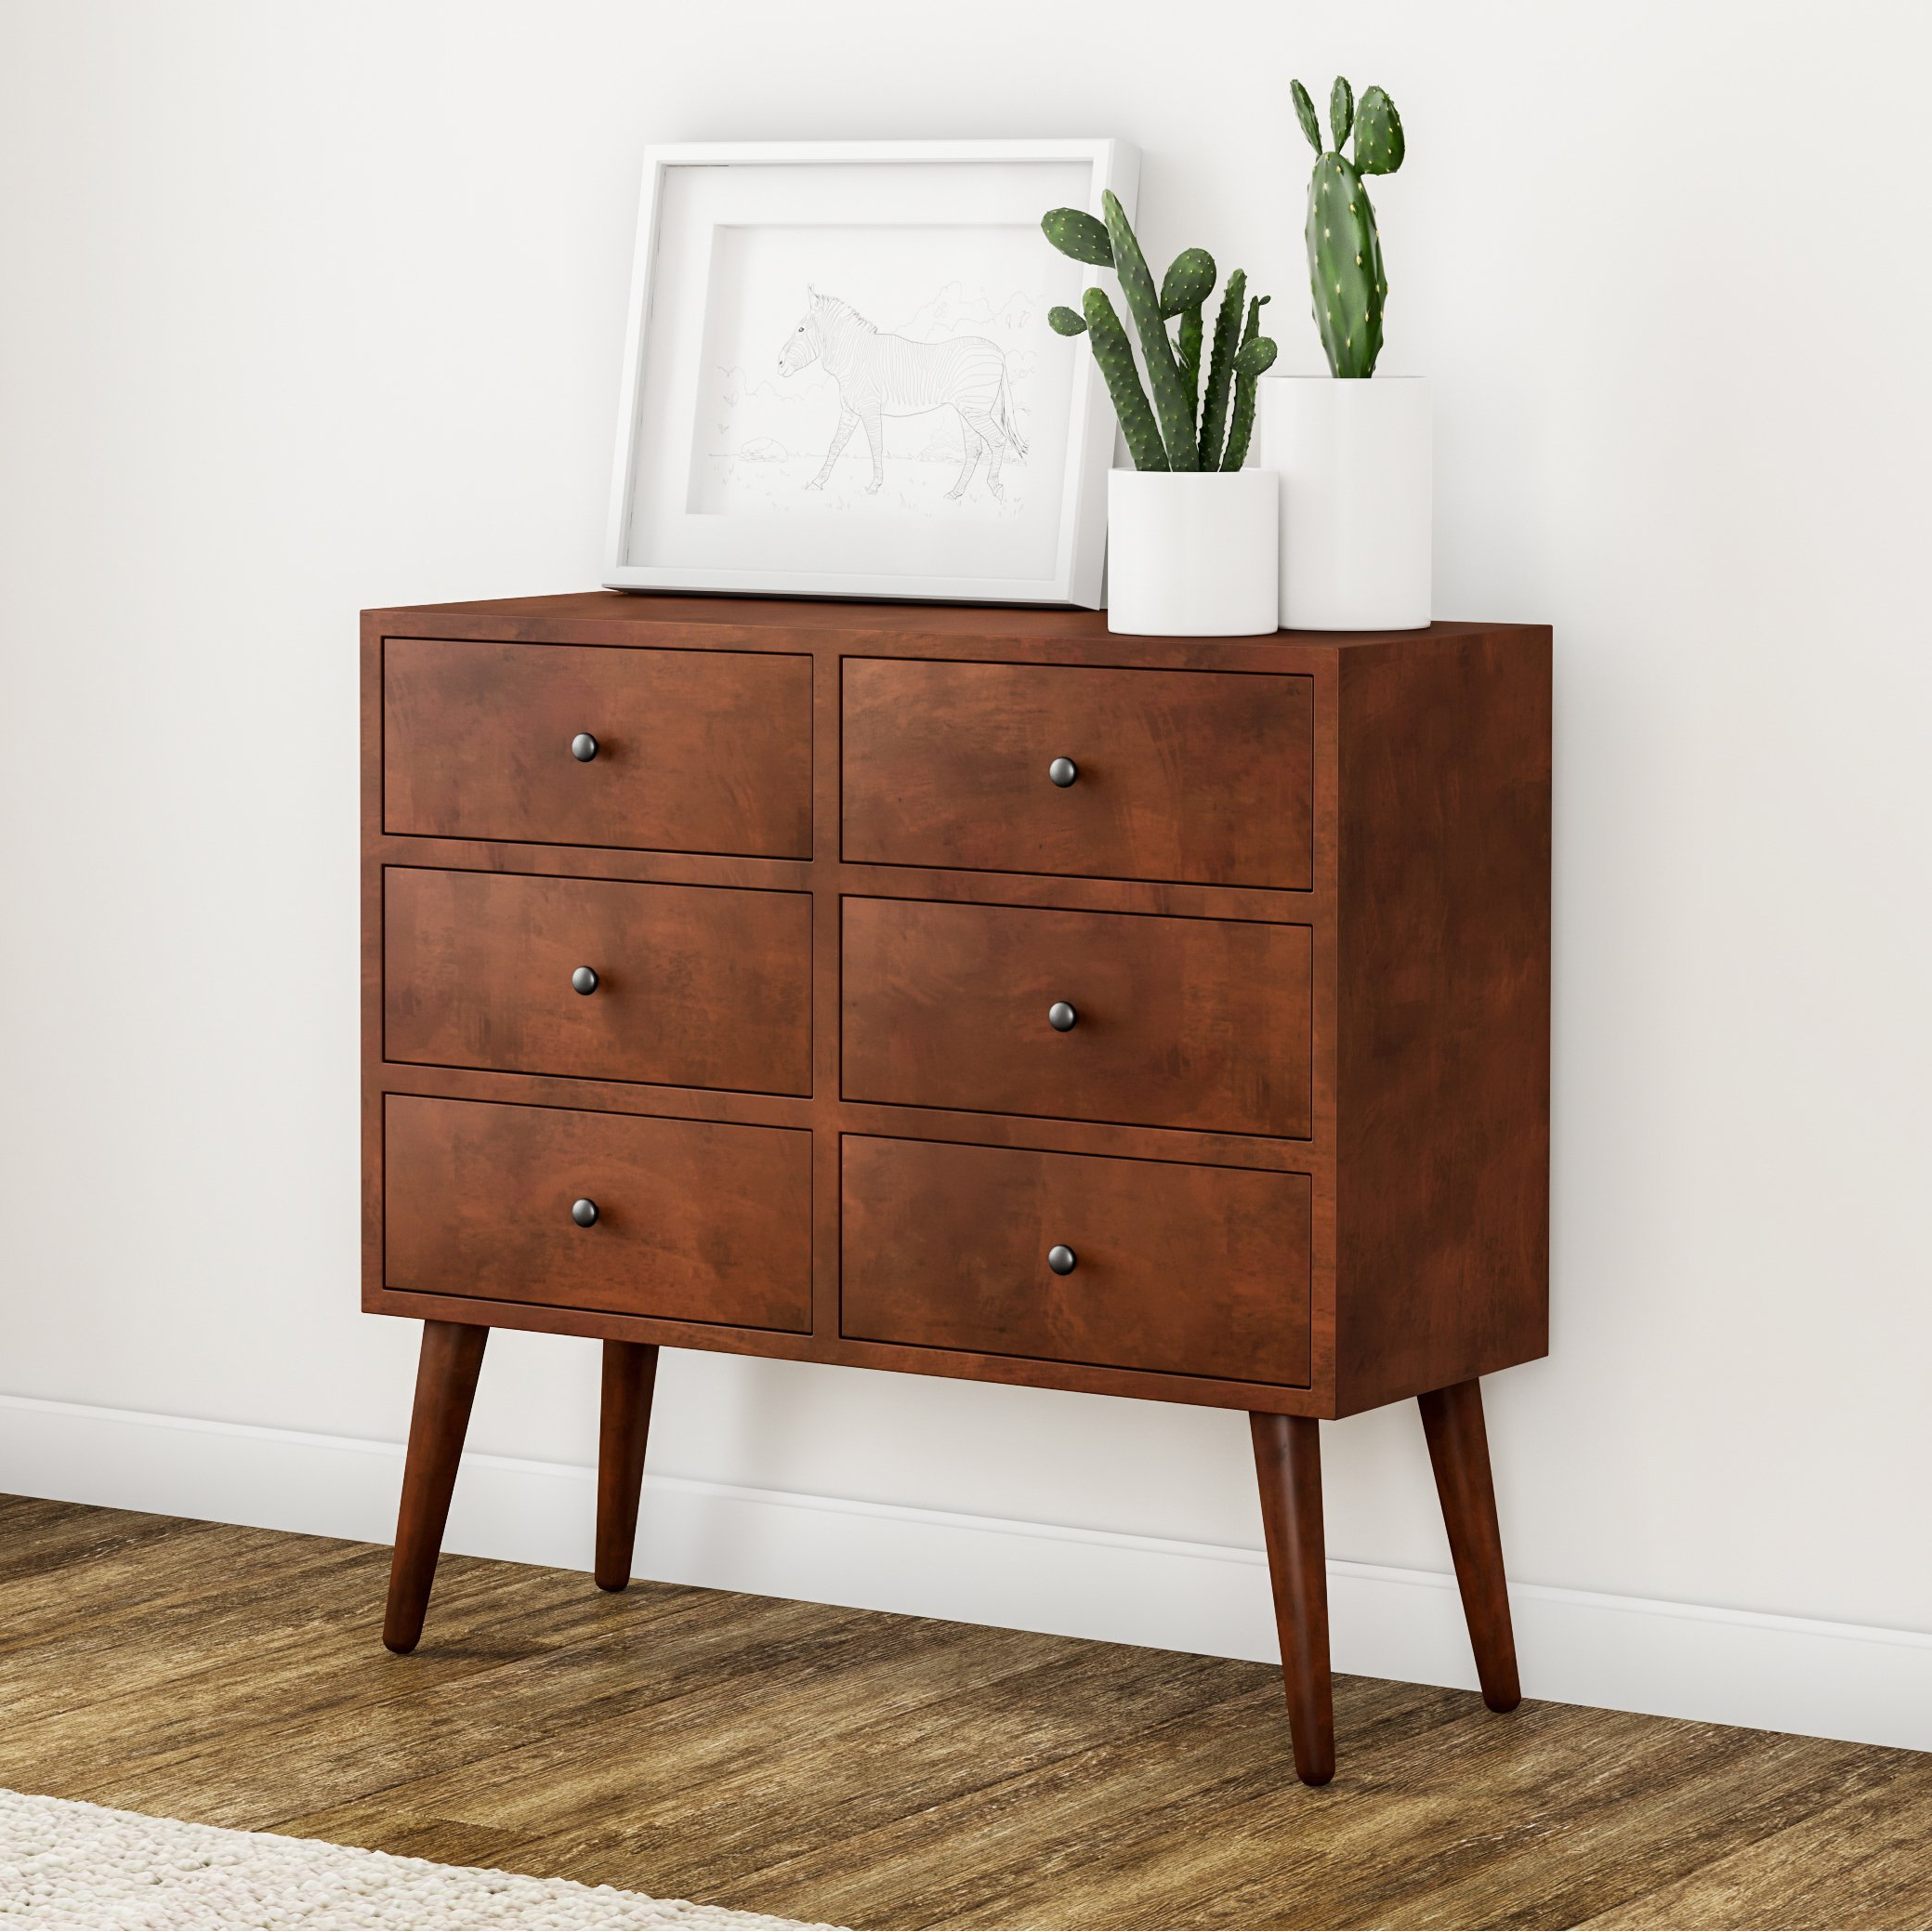 Popular Shop Carson Carrington Linkoping Mid Century 6 Drawer Wood Accent Pertaining To Walnut Finish 6 Drawer Coffee Tables (View 13 of 20)